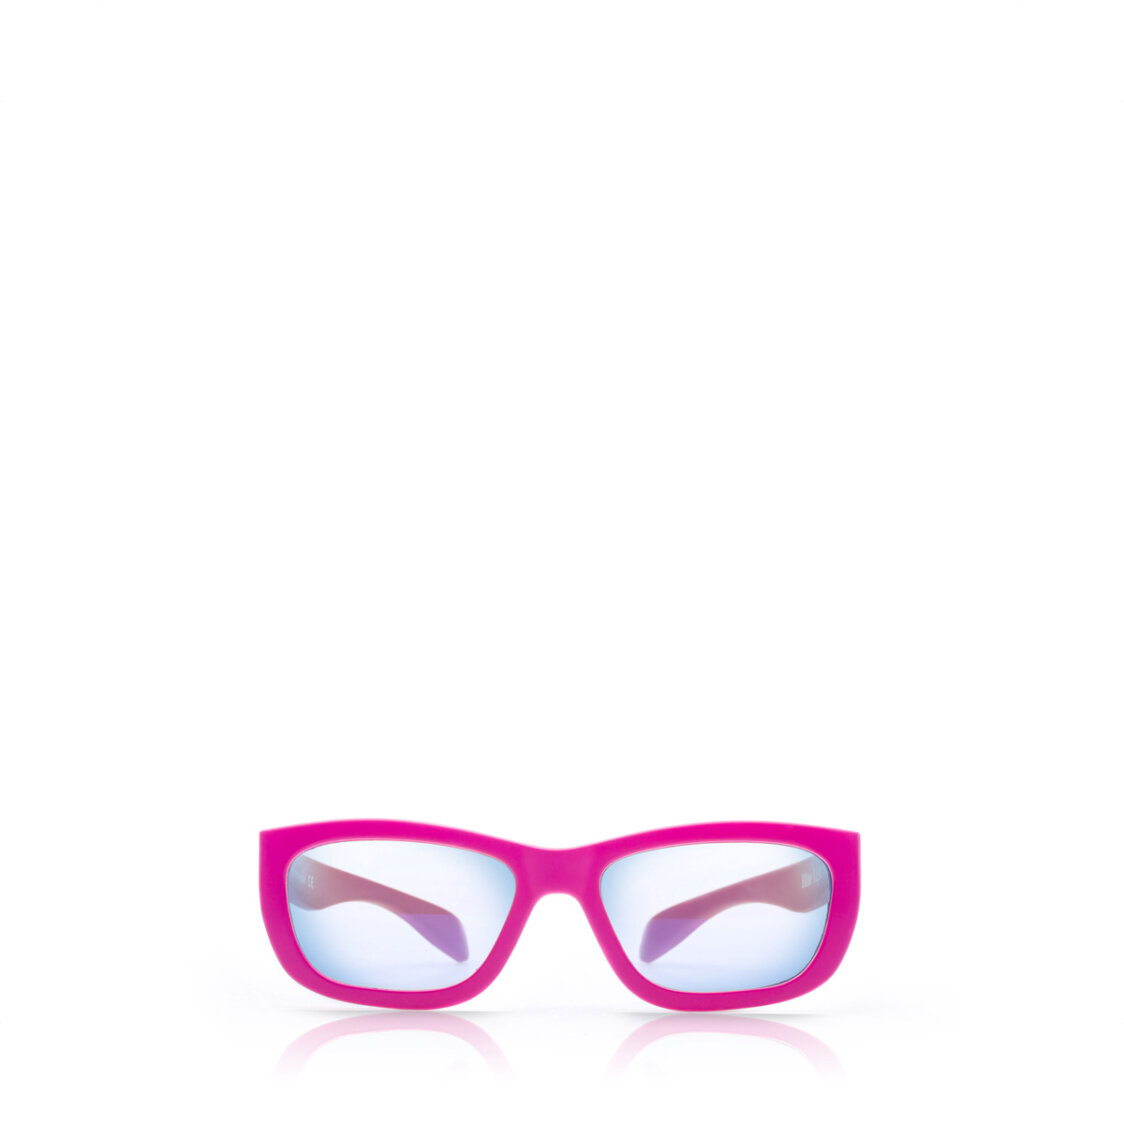 Shadez Eyewear Blue Light Pink Teeny aged 7- 16 years old